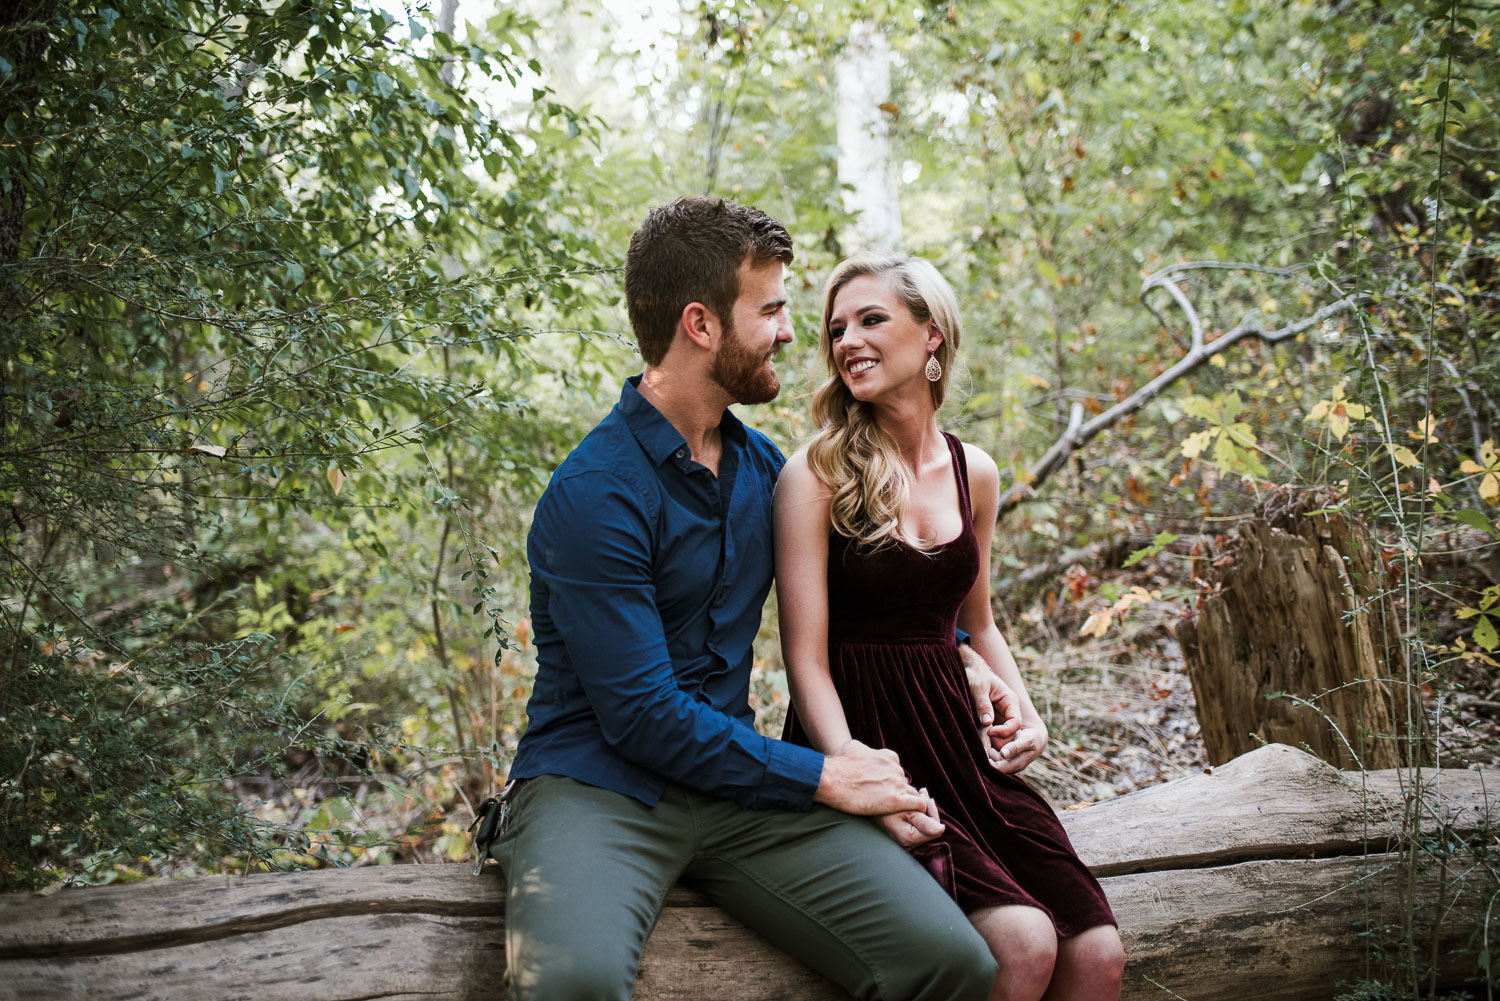 josh - lindsey - engagement - photos - alrington - texas - river - legacy - park-1.jpg